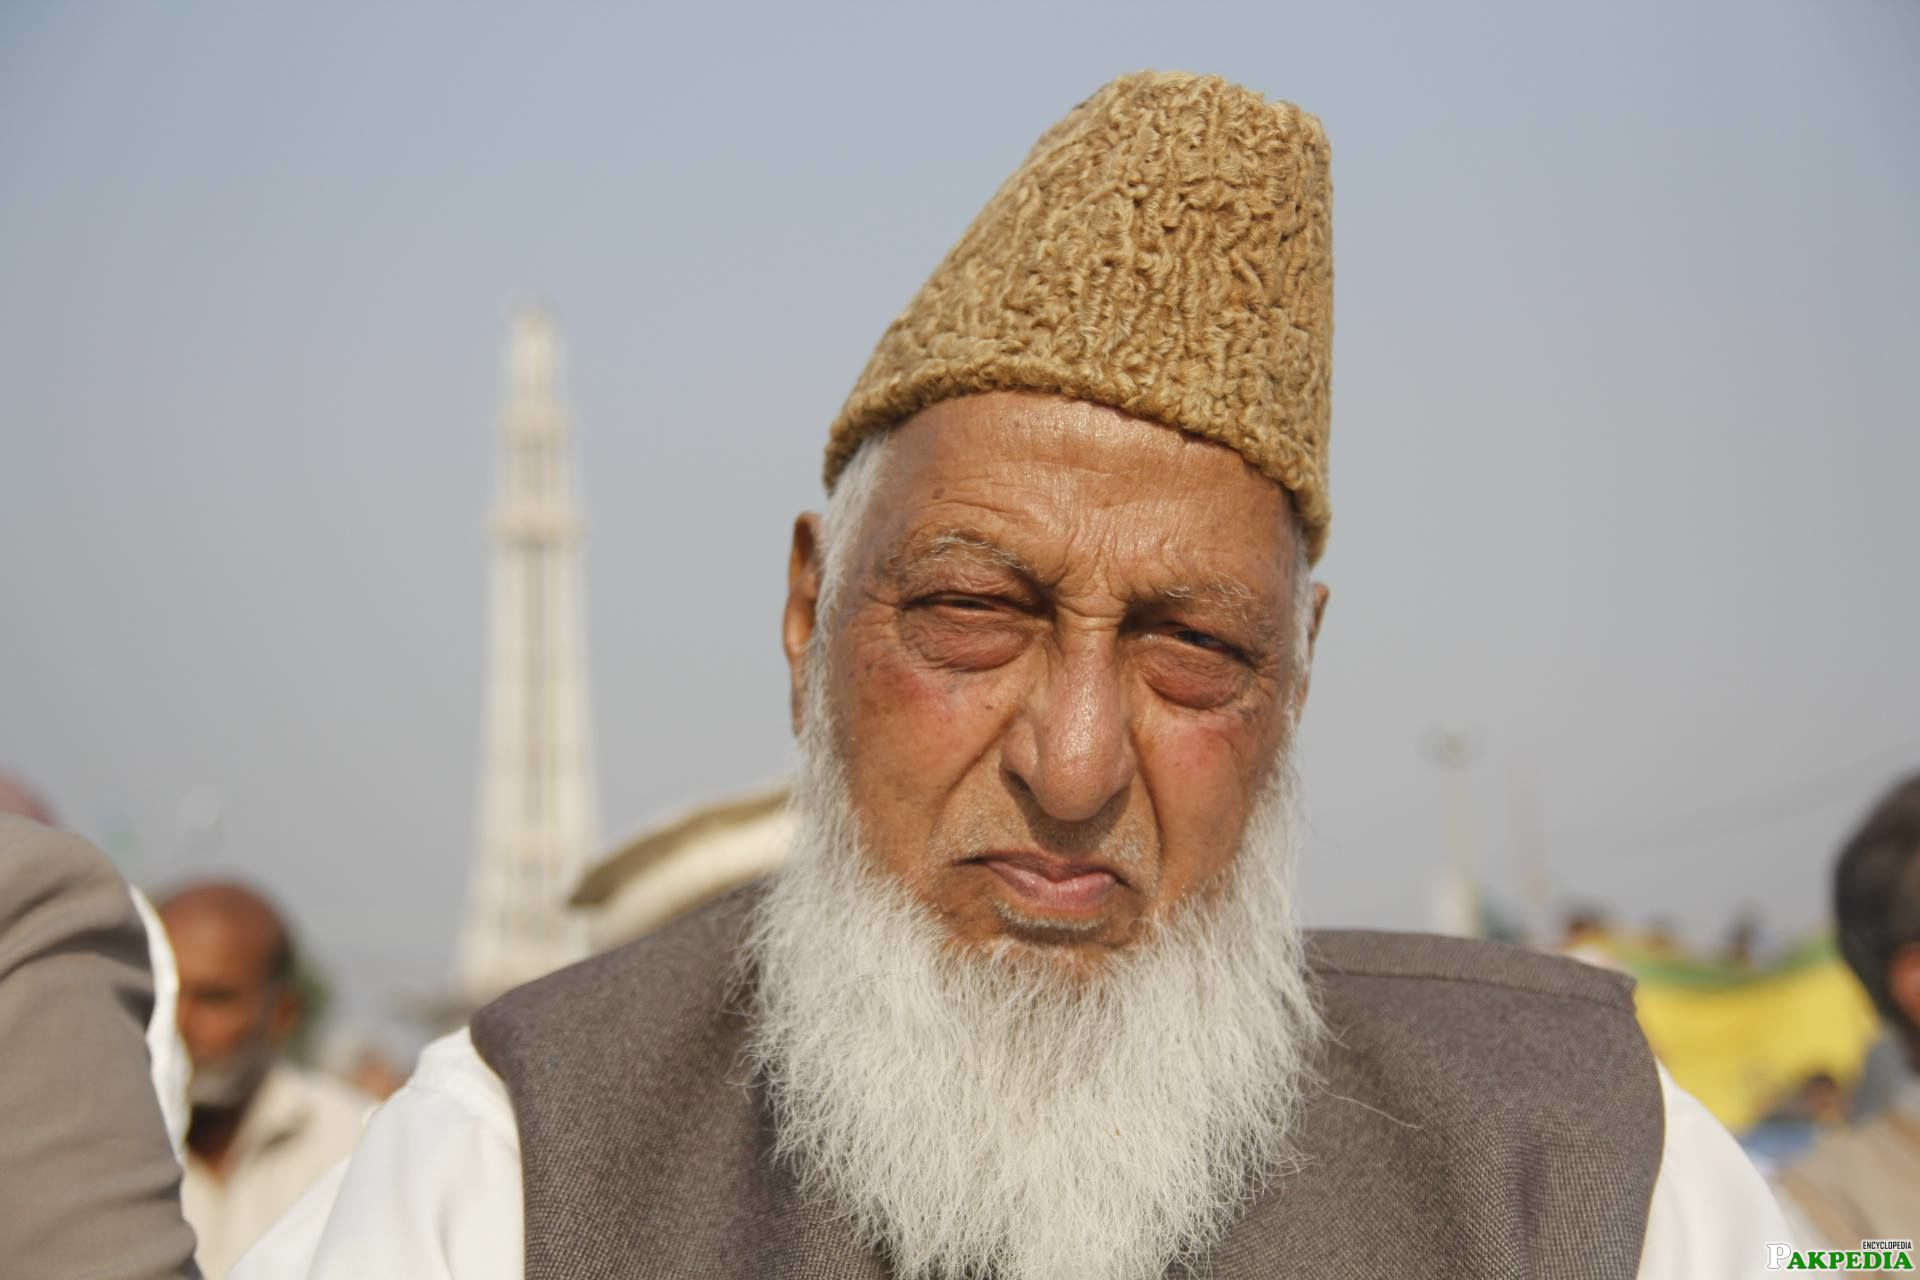 Naimatullah Khan at Minar-e-Pakistan in Jalsa